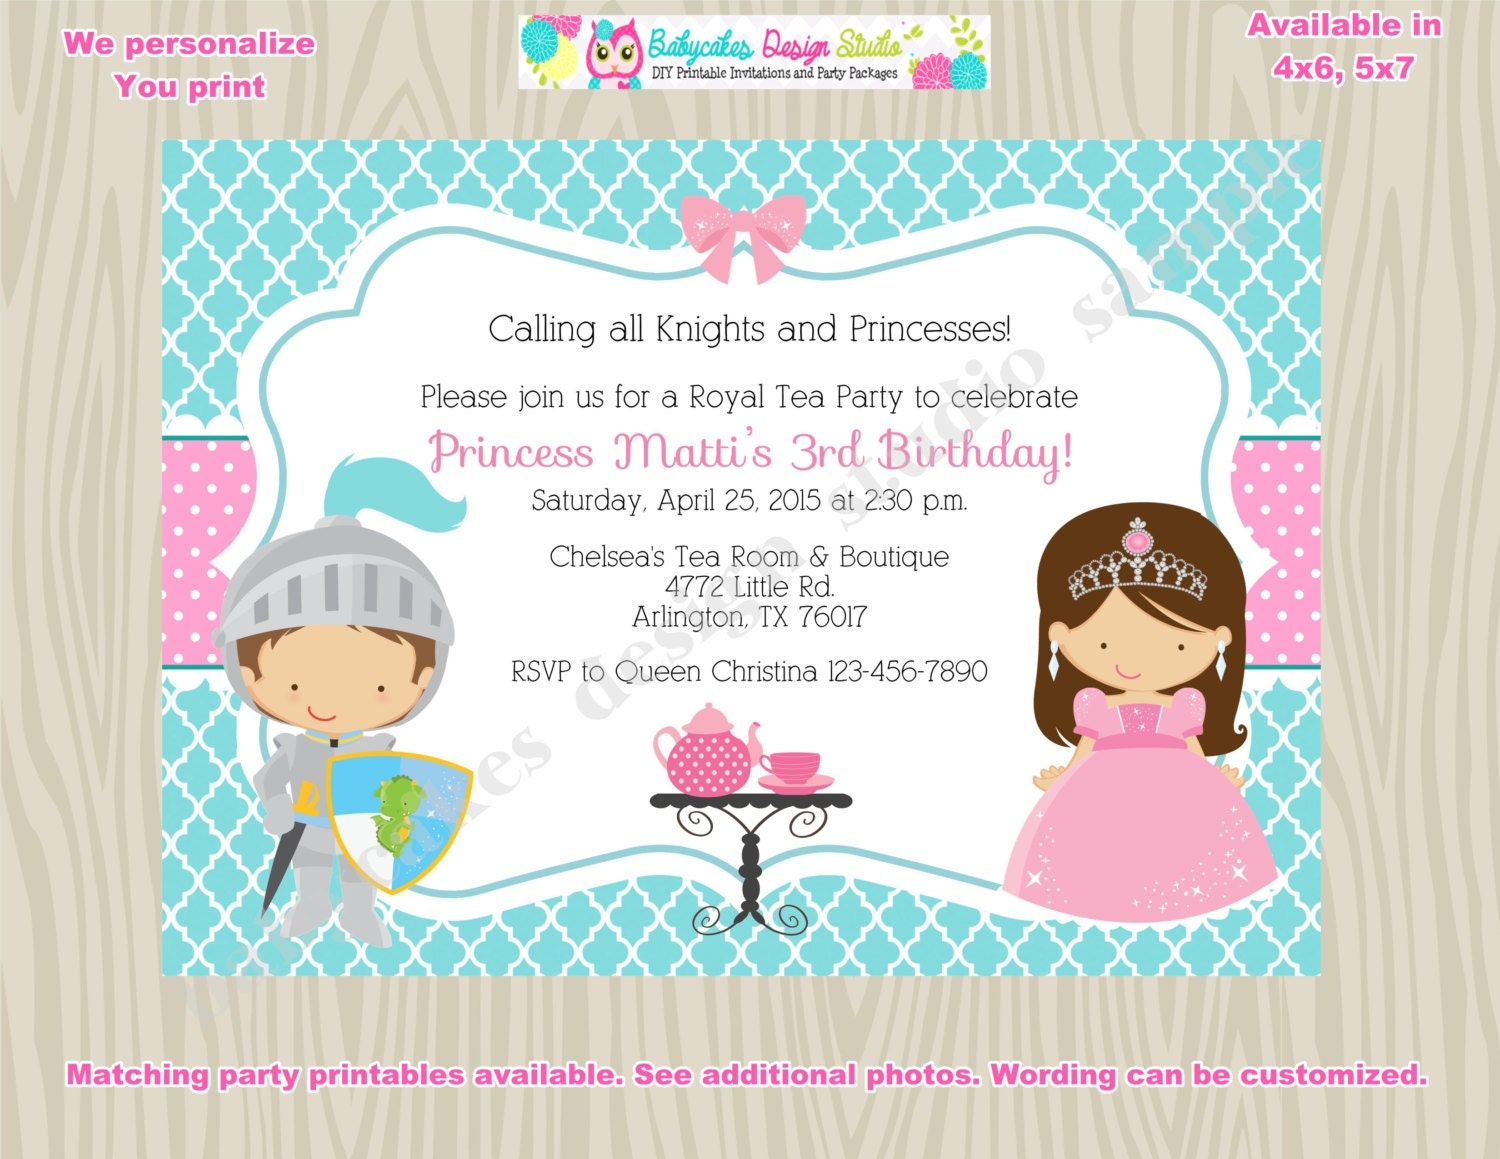 Royal Tea Party Birthday Invitation invite knights and – Princess and Knight Party Invitations